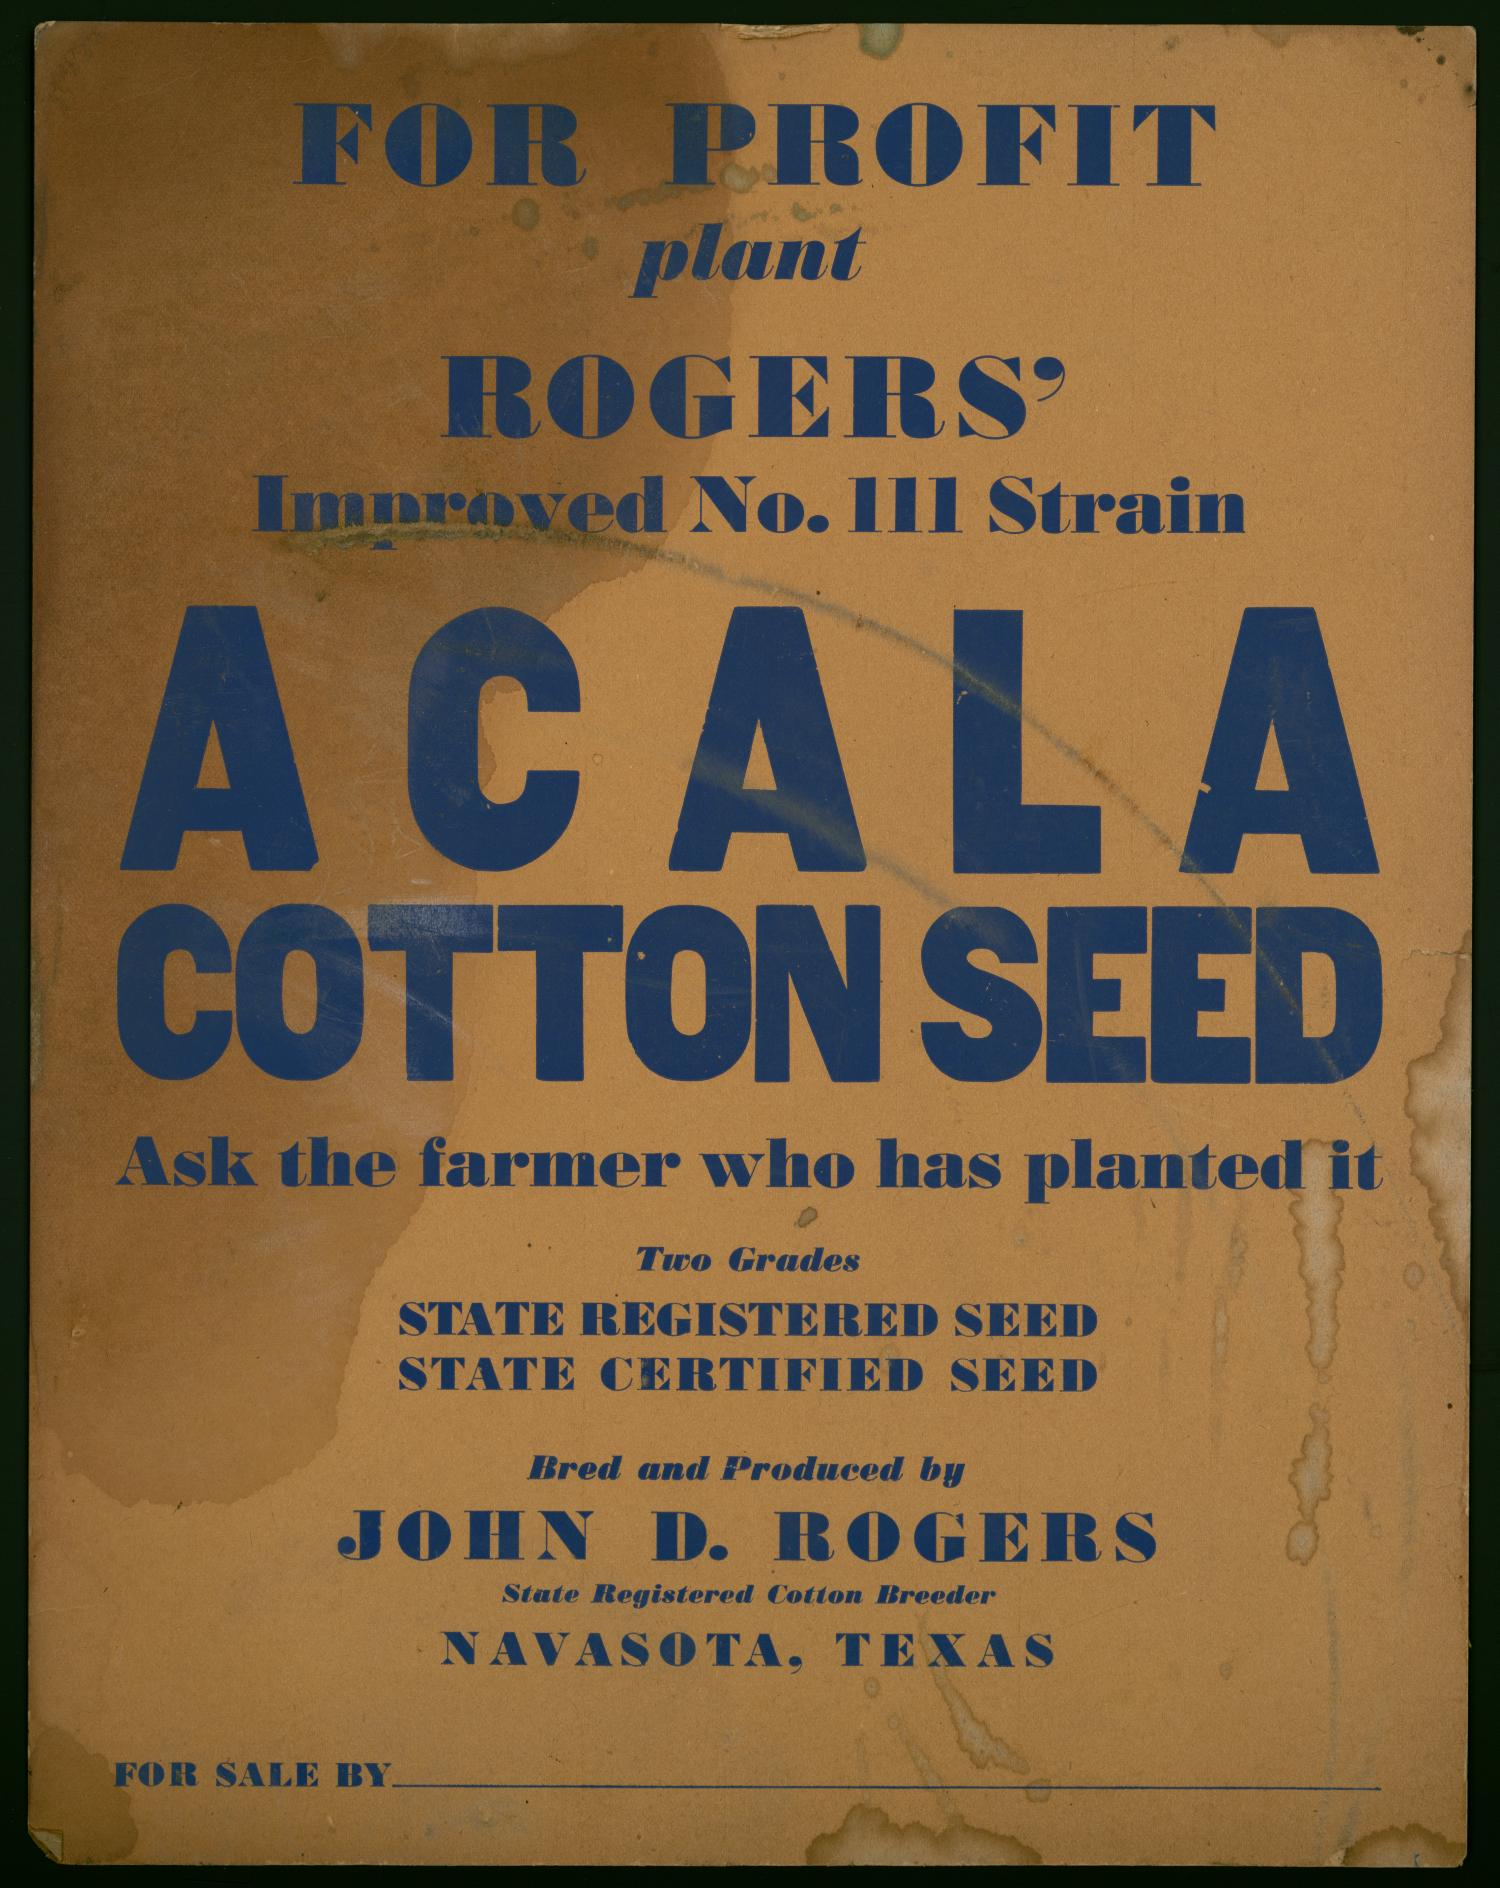 Acala cotton seed poster                                                                                                      [Sequence #]: 1 of 1